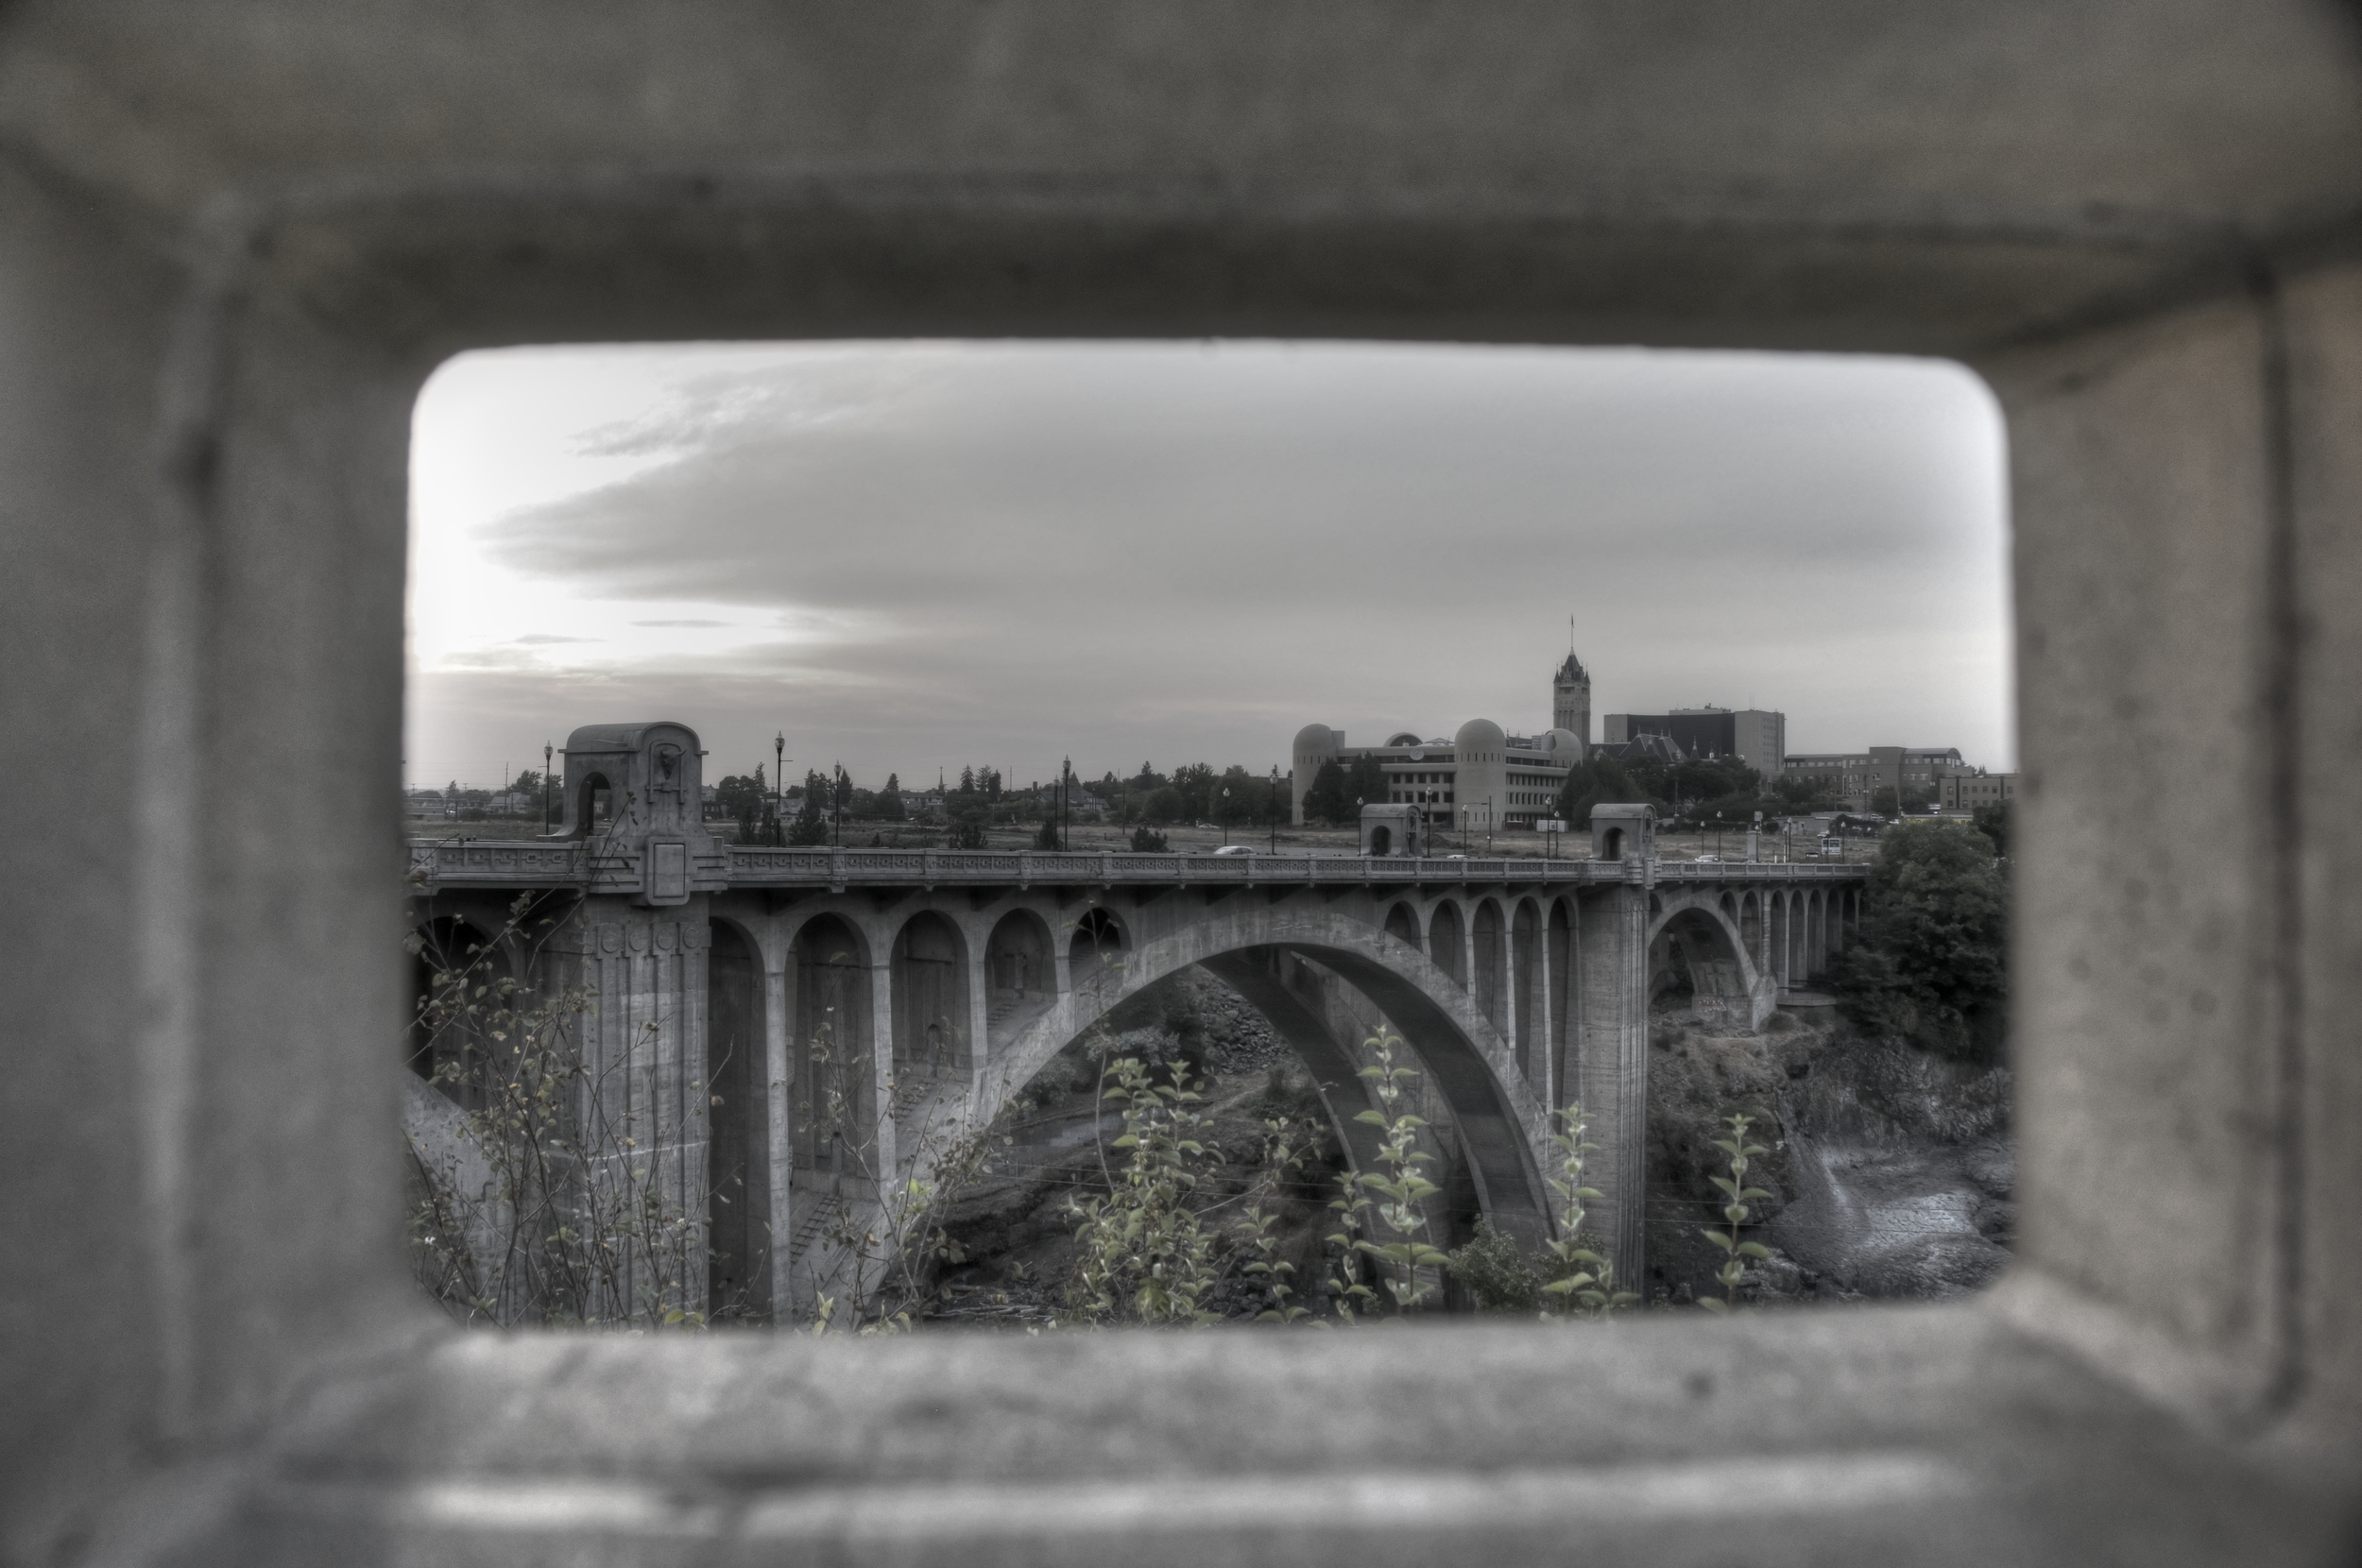 Looking Through to Monroe Street Bridge